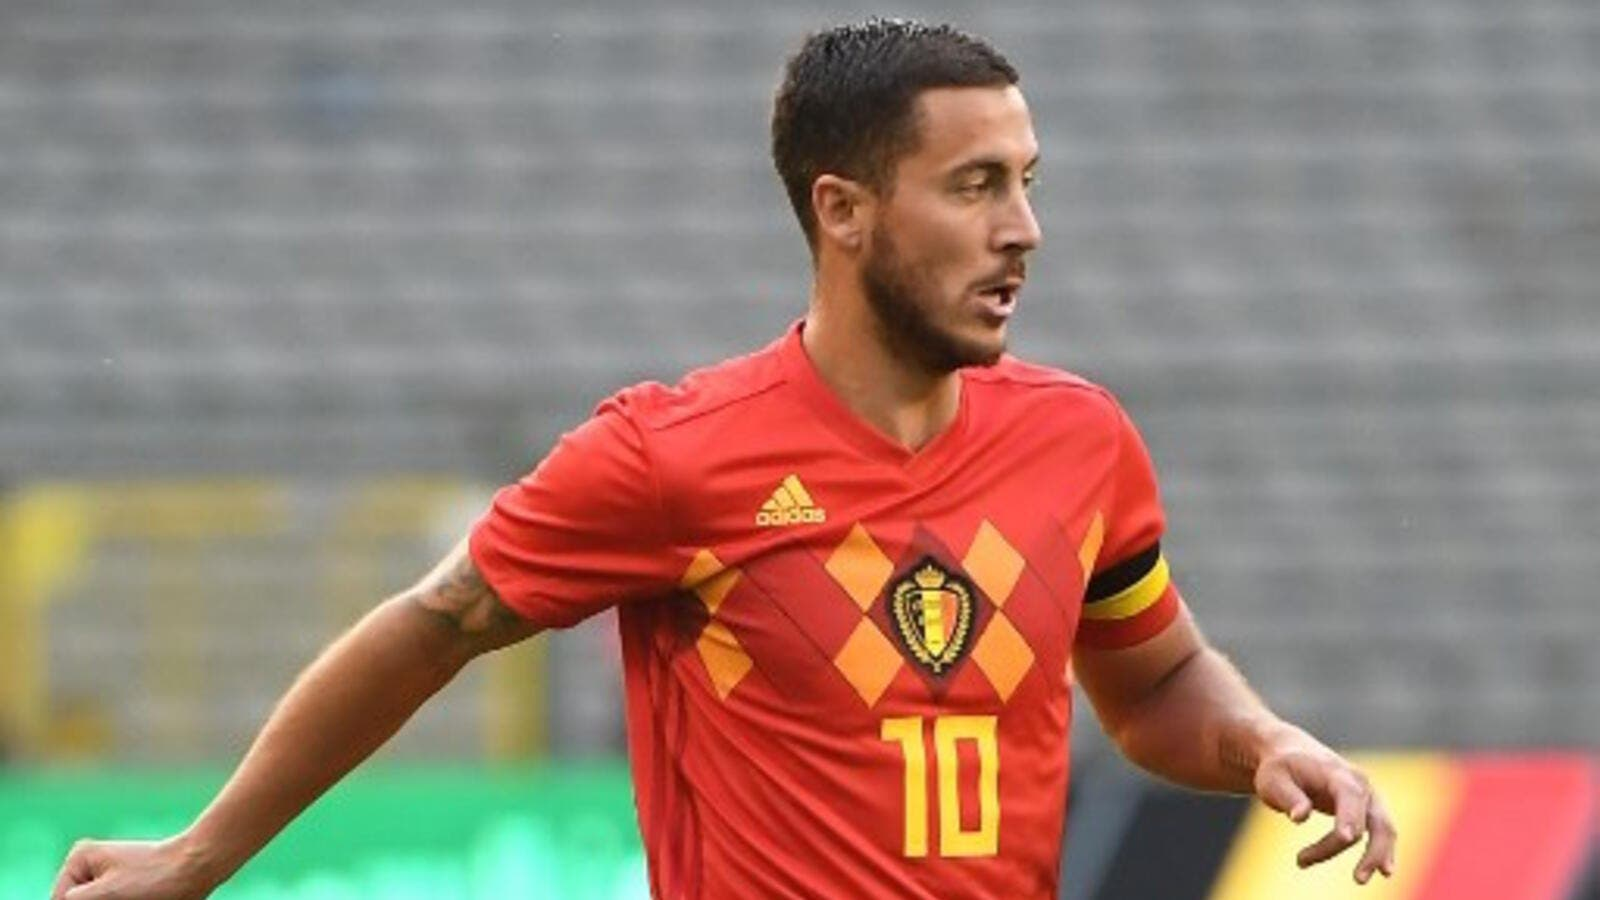 The Belgium attacker praised Egypt's performance in the absence of their star, who he hopes will take part at the World Cup